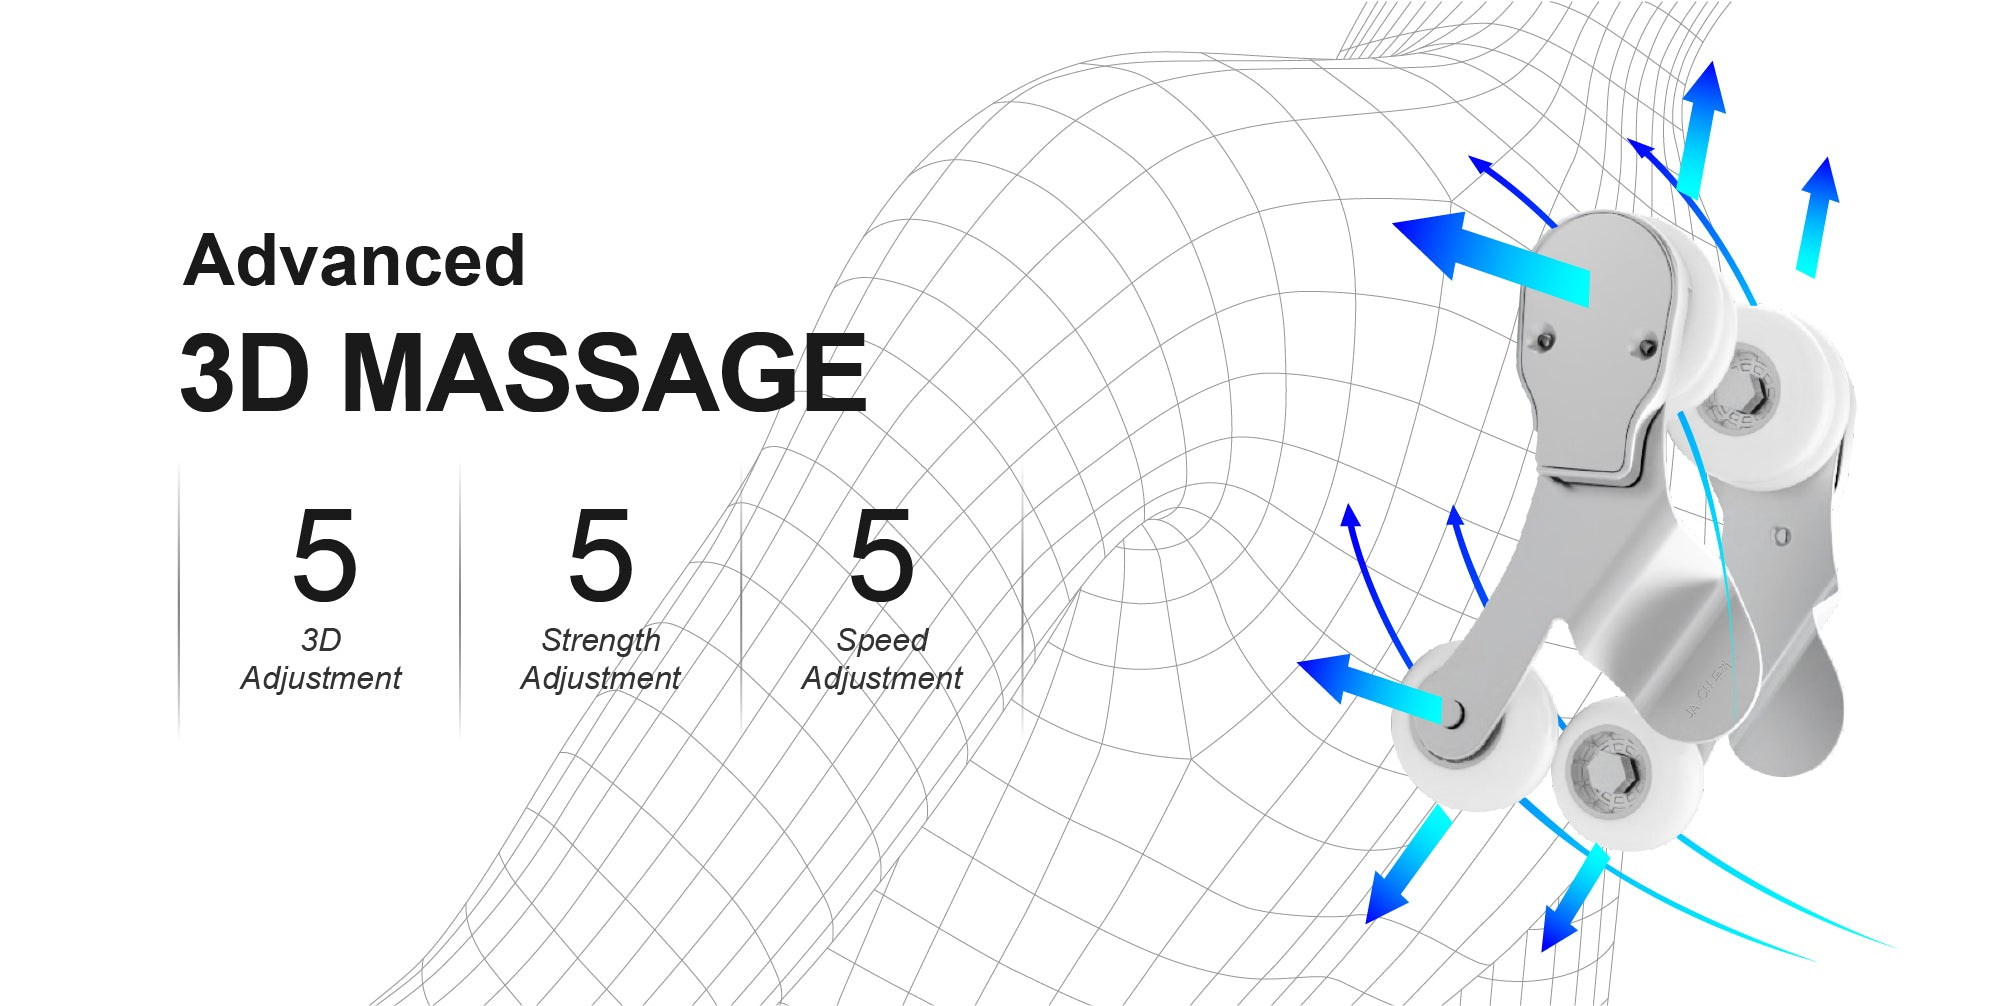 advanced 3d massage